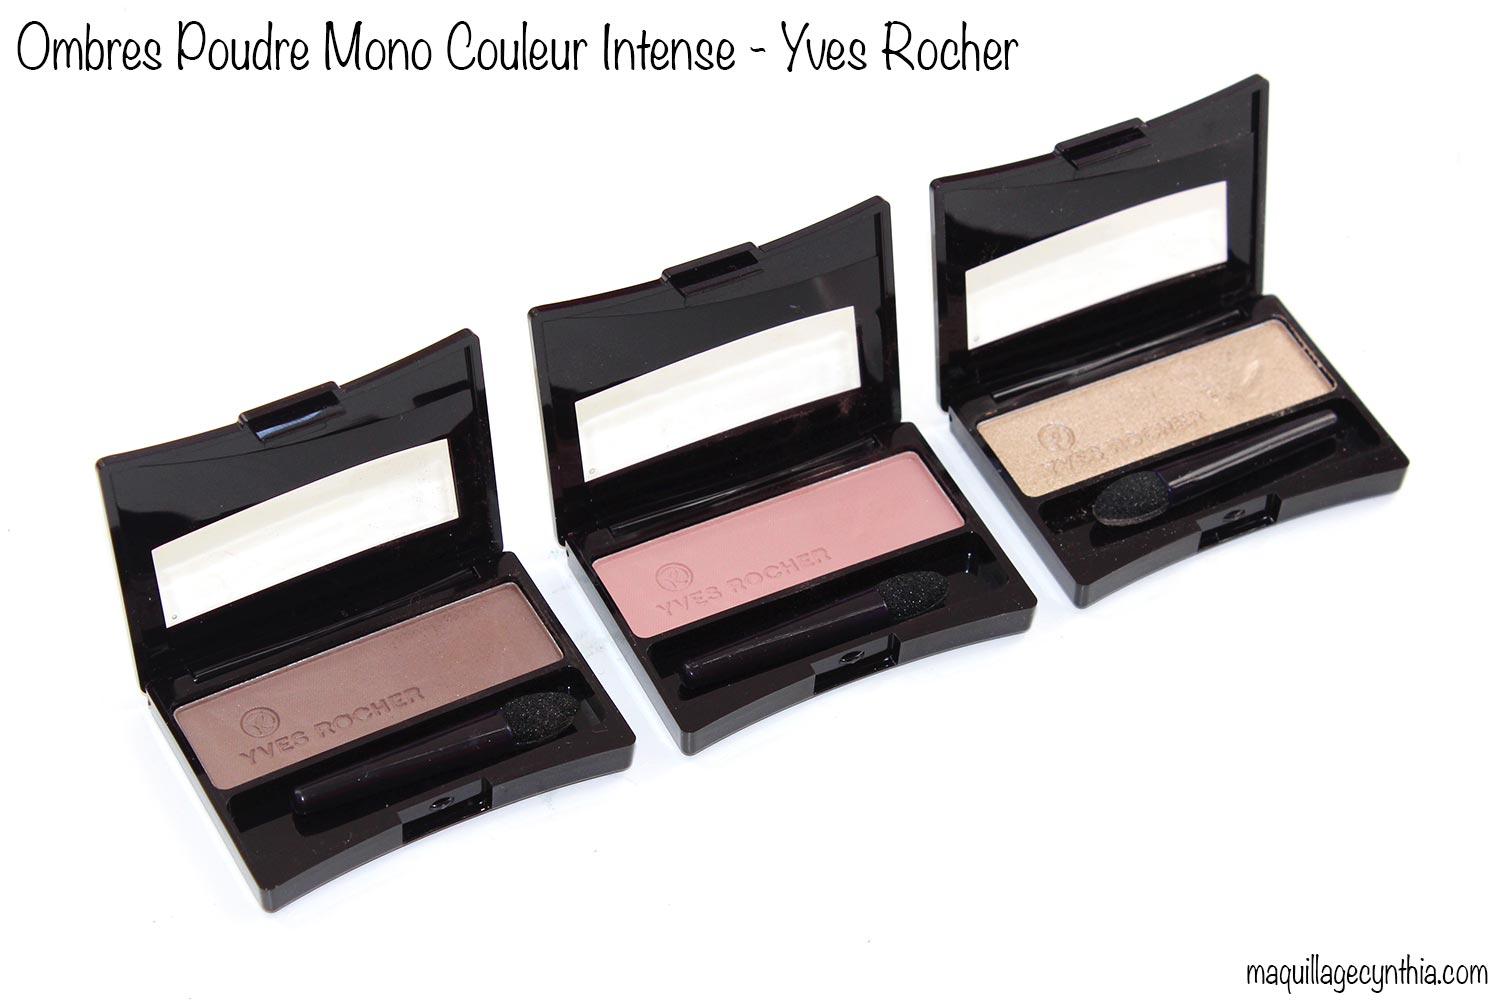 ombres mono poudre couleur intense - Prix Maquillage Mariage Yves Rocher